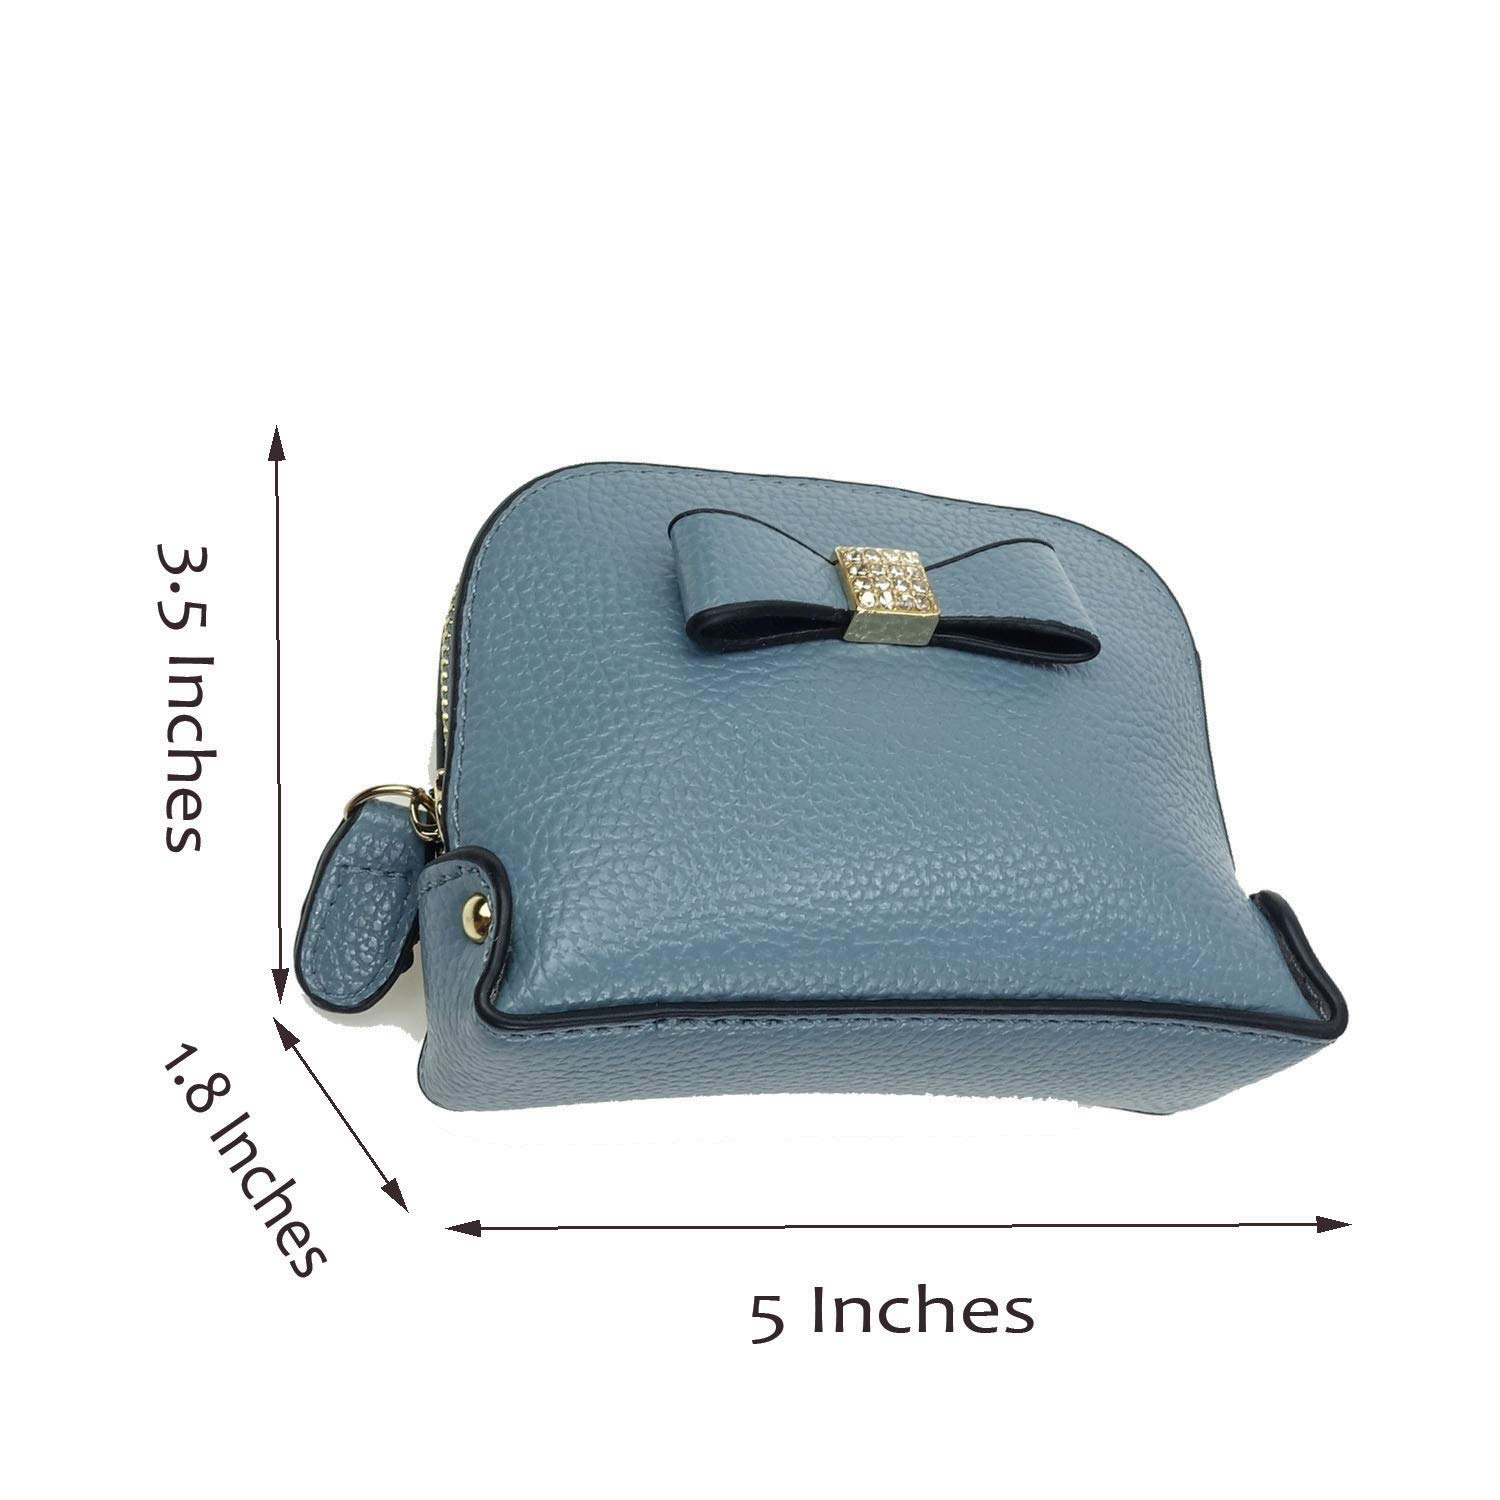 Coin Purse Wallet leather Wristlet Handbags with Wrist Strap Cute Mini Designer Pouch Great Gifts for Women Girls (Bow Blue) by JZE (Image #5)